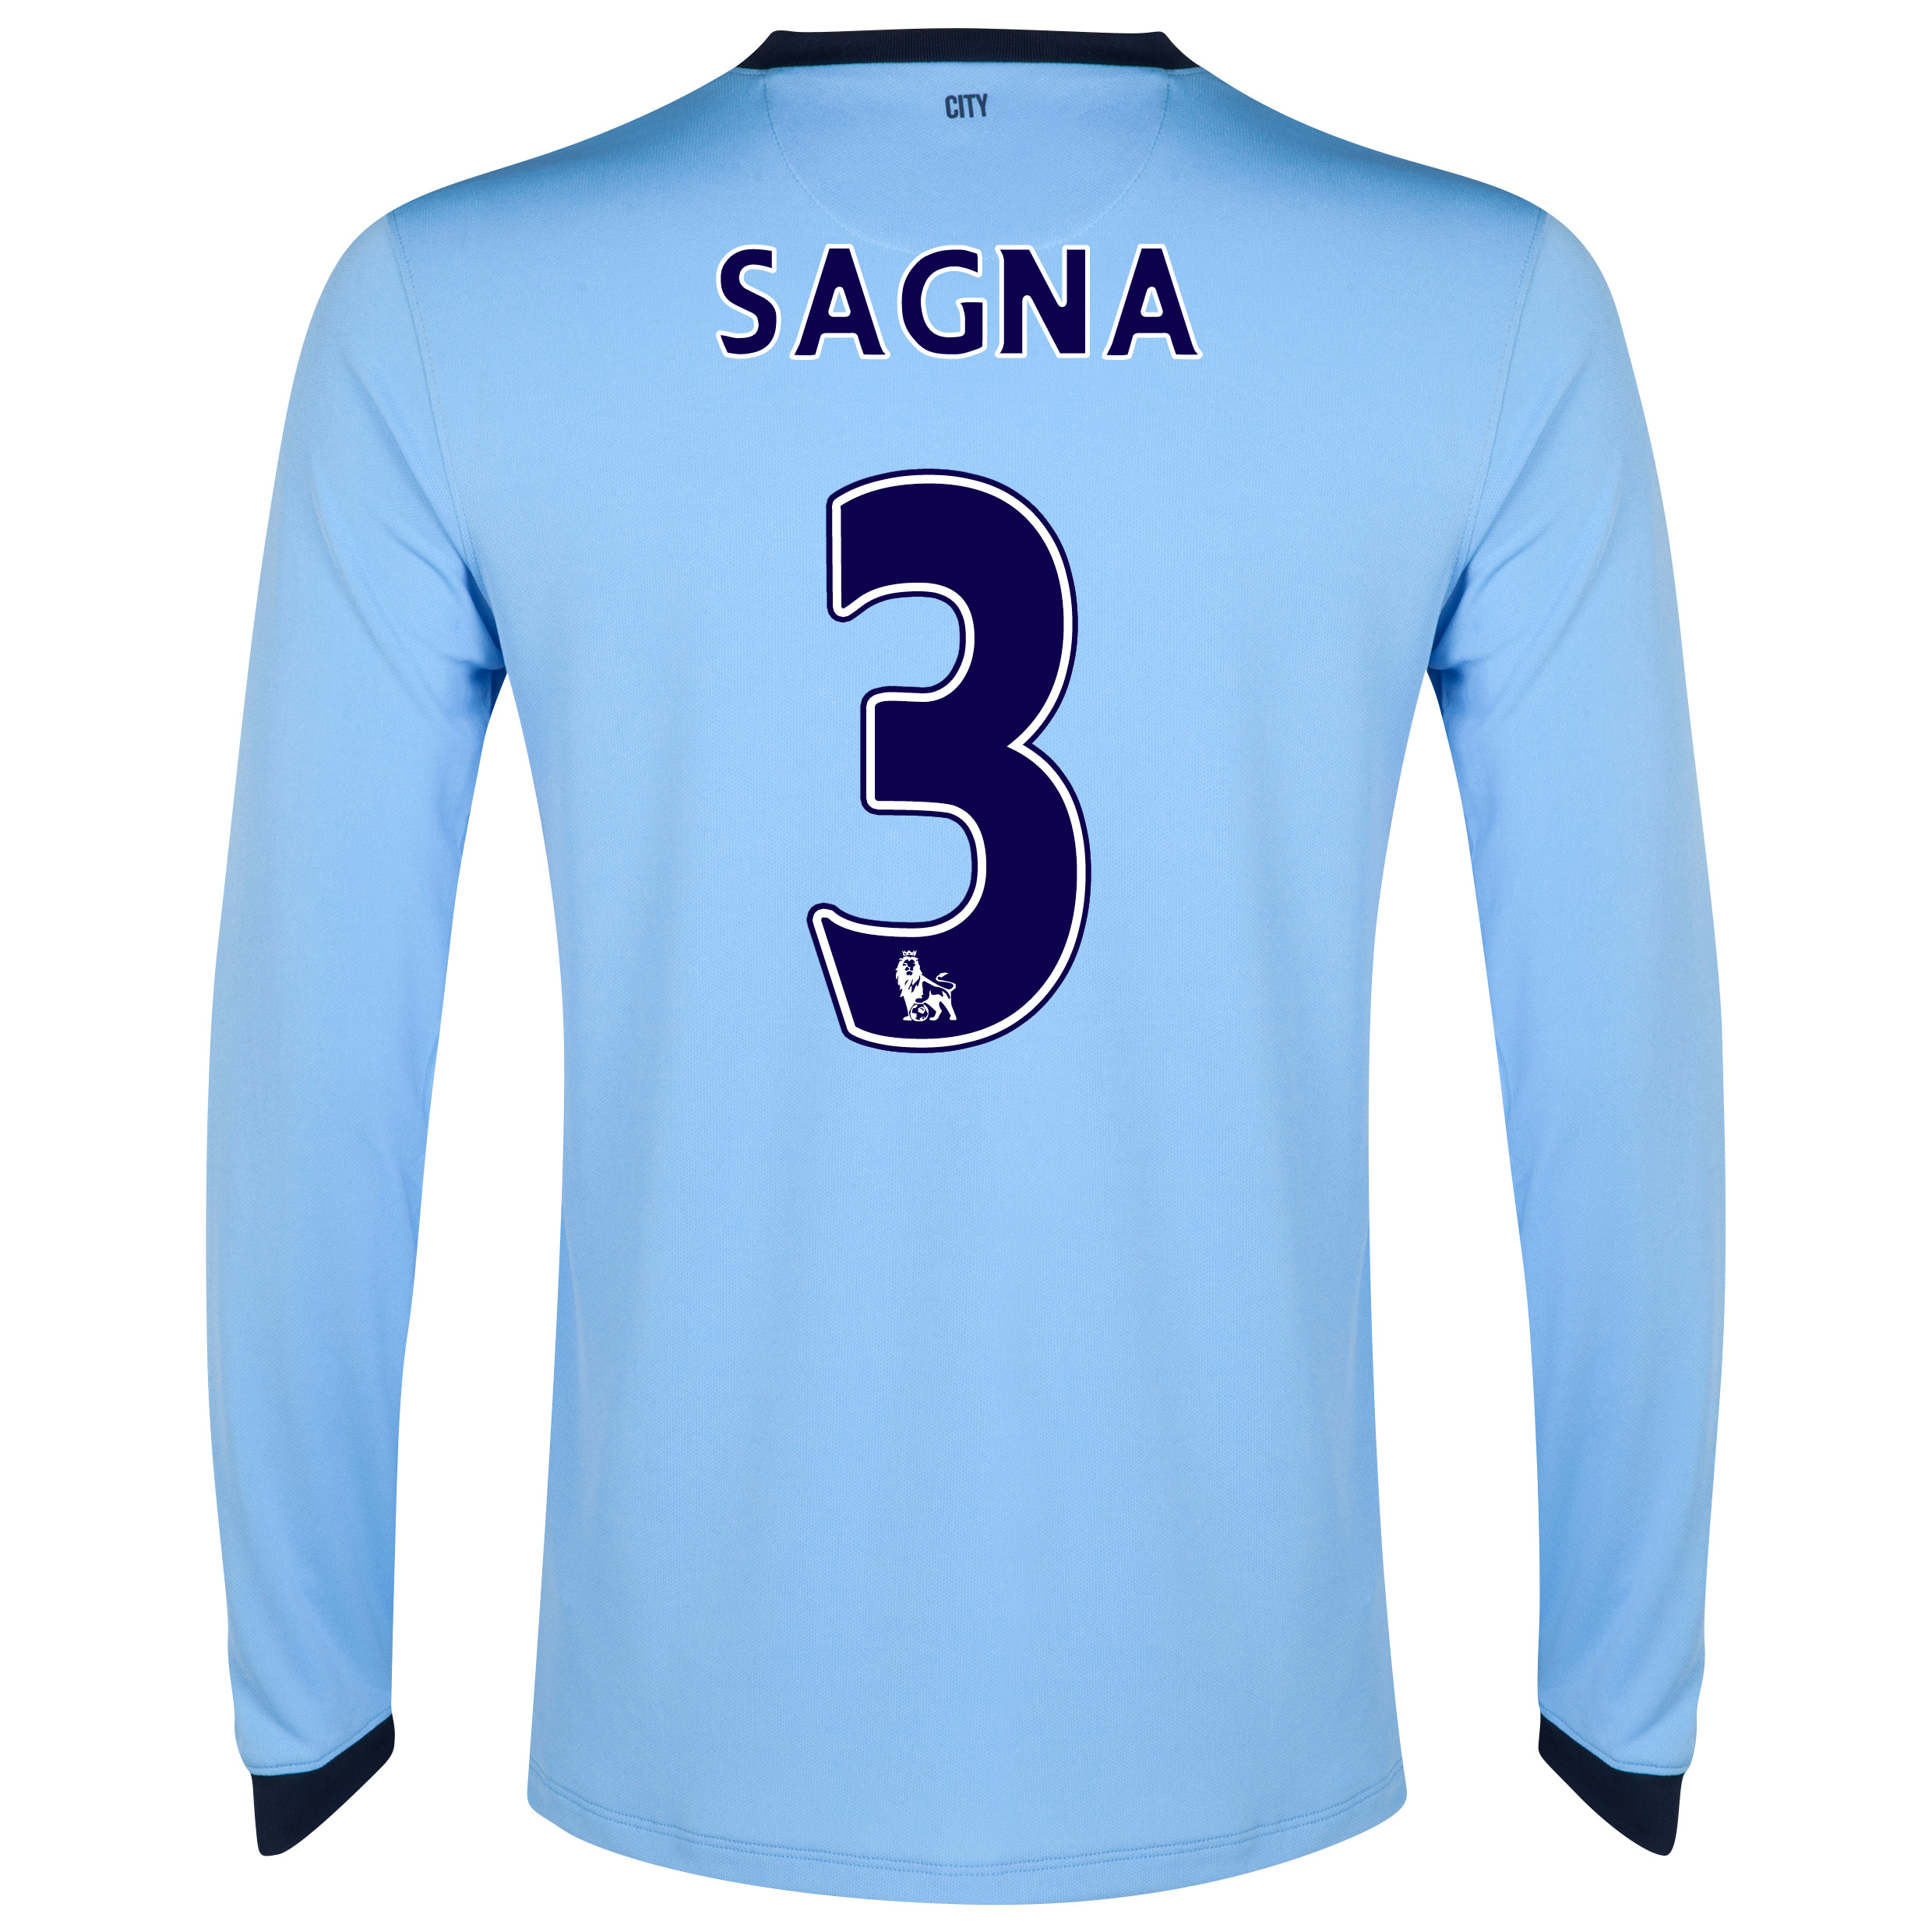 Manchester City Home Shirt 2014/15 - Long Sleeve Sky Blue with Sagna 3 printing